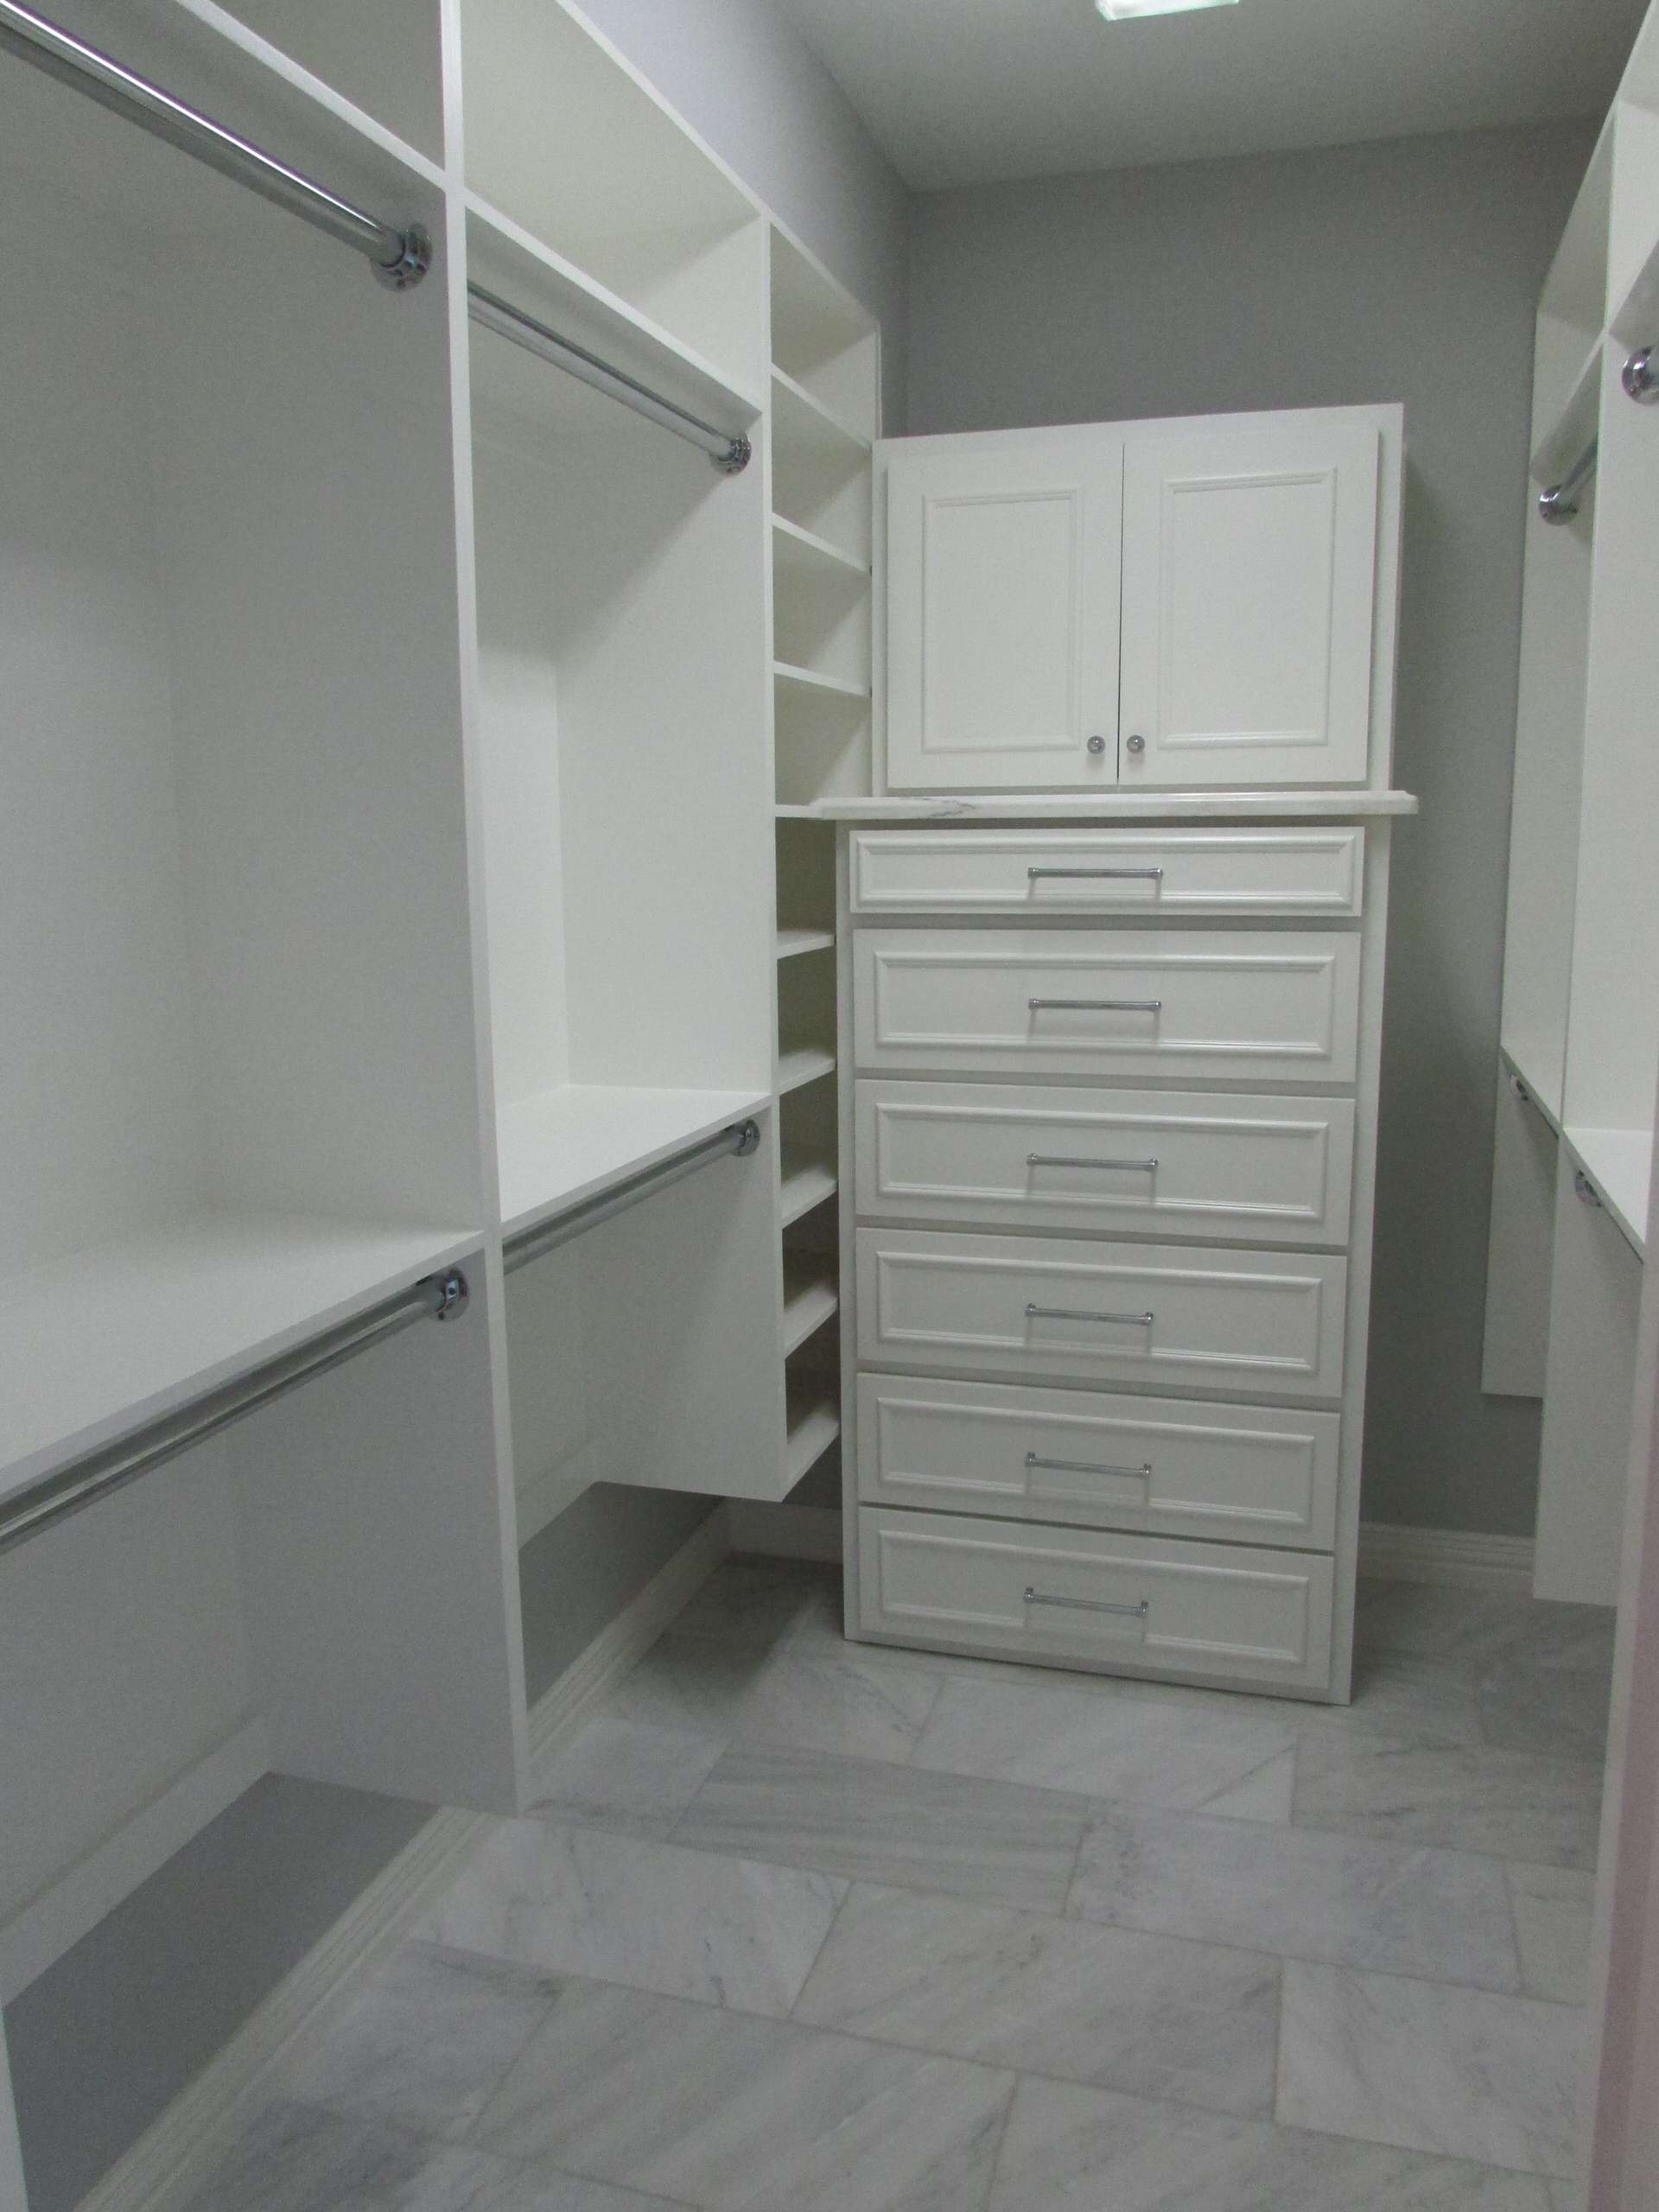 A dated Plano master bath received an updated look with a complete tear out, re-design and remodel with new custom cabinetry to include built-in dressers in closets, free standing tub with wall mounte